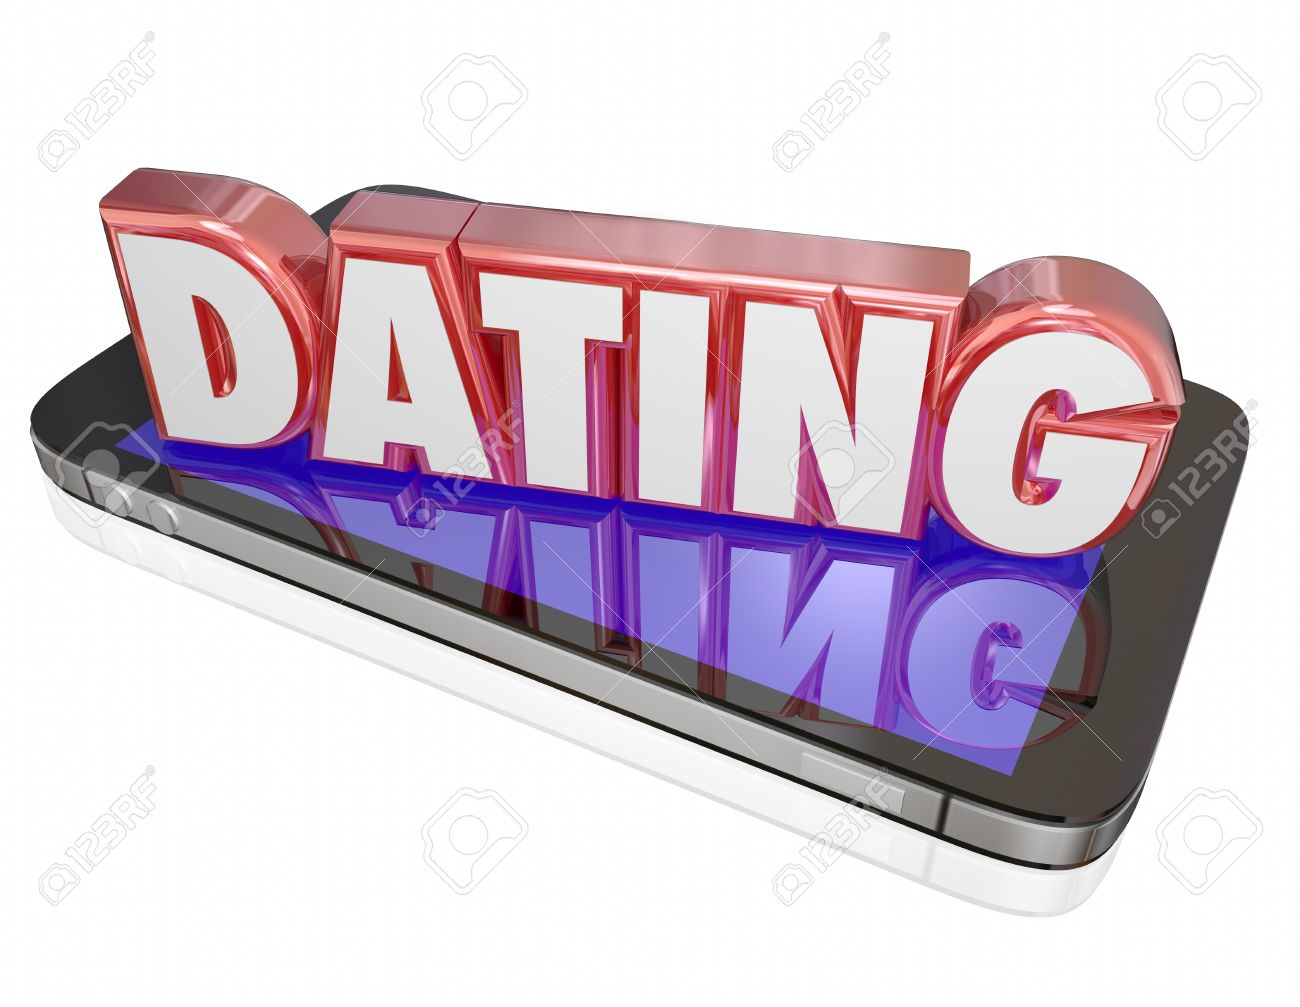 Dating word in red  d letters on a smart or mobile phone to illustrate making a